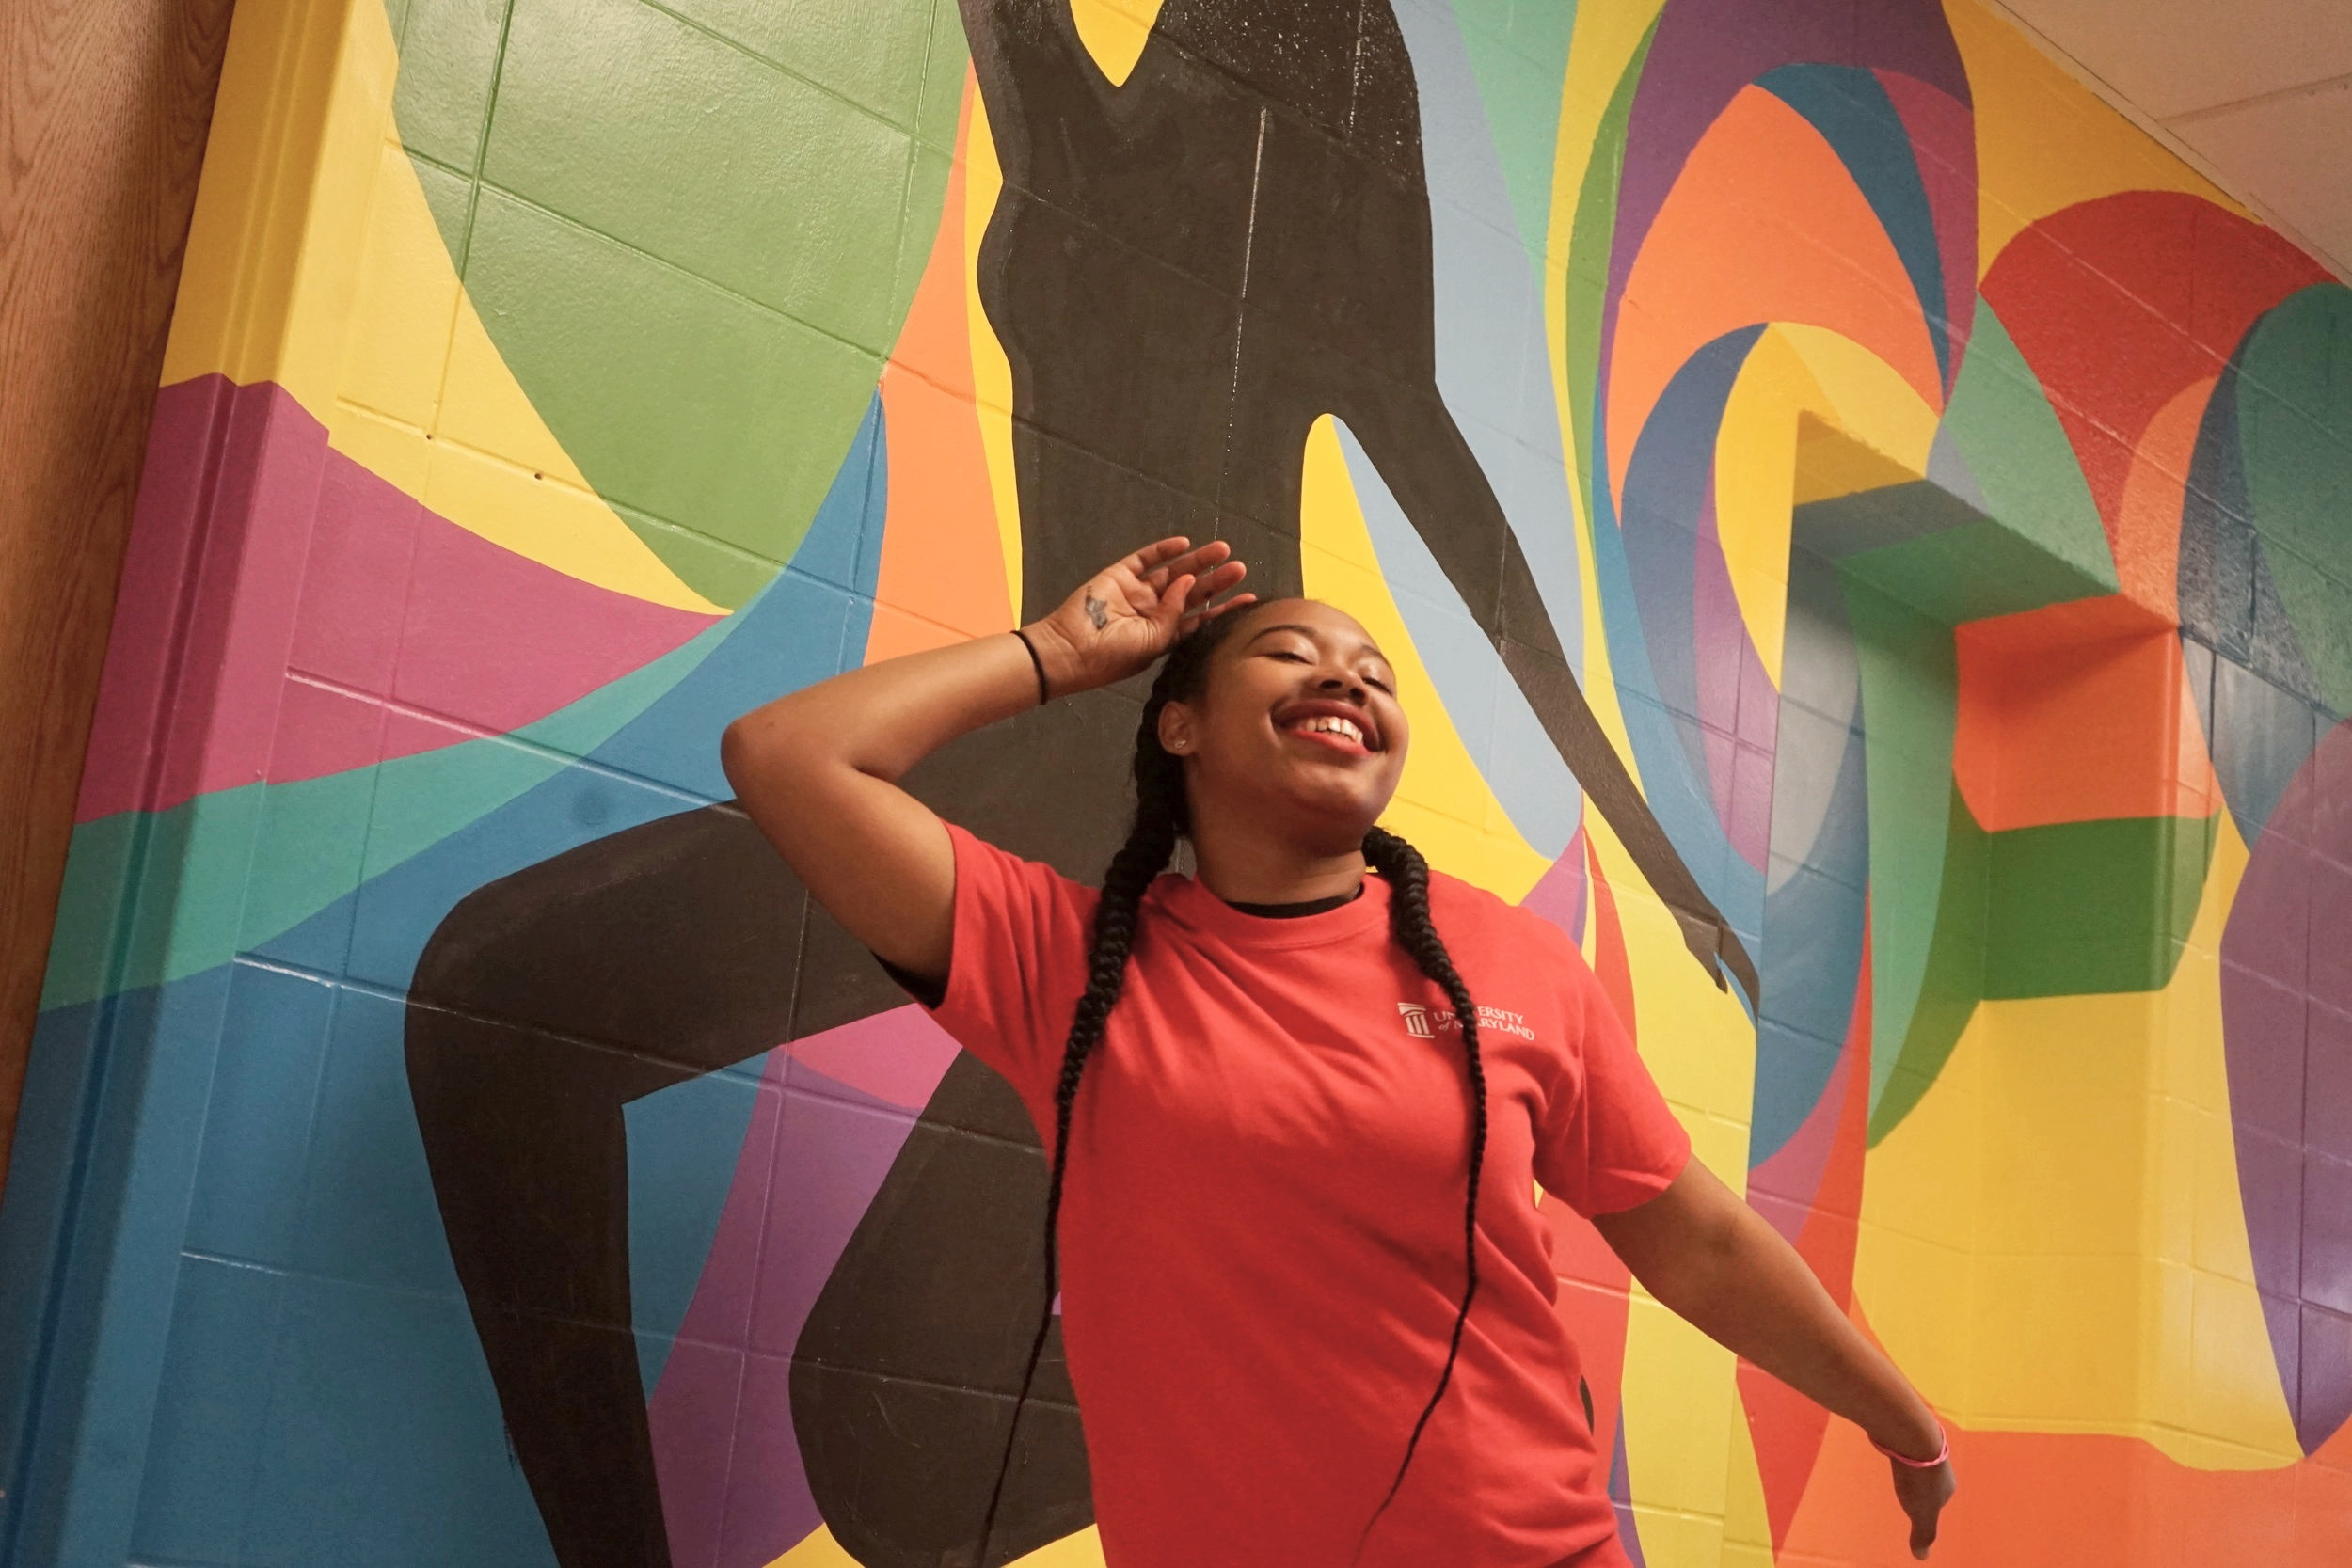 Dyelle Washington, a sophomore at Renaissance Academy strikes a similar pose to the mural she stands in front of and helped to complete.